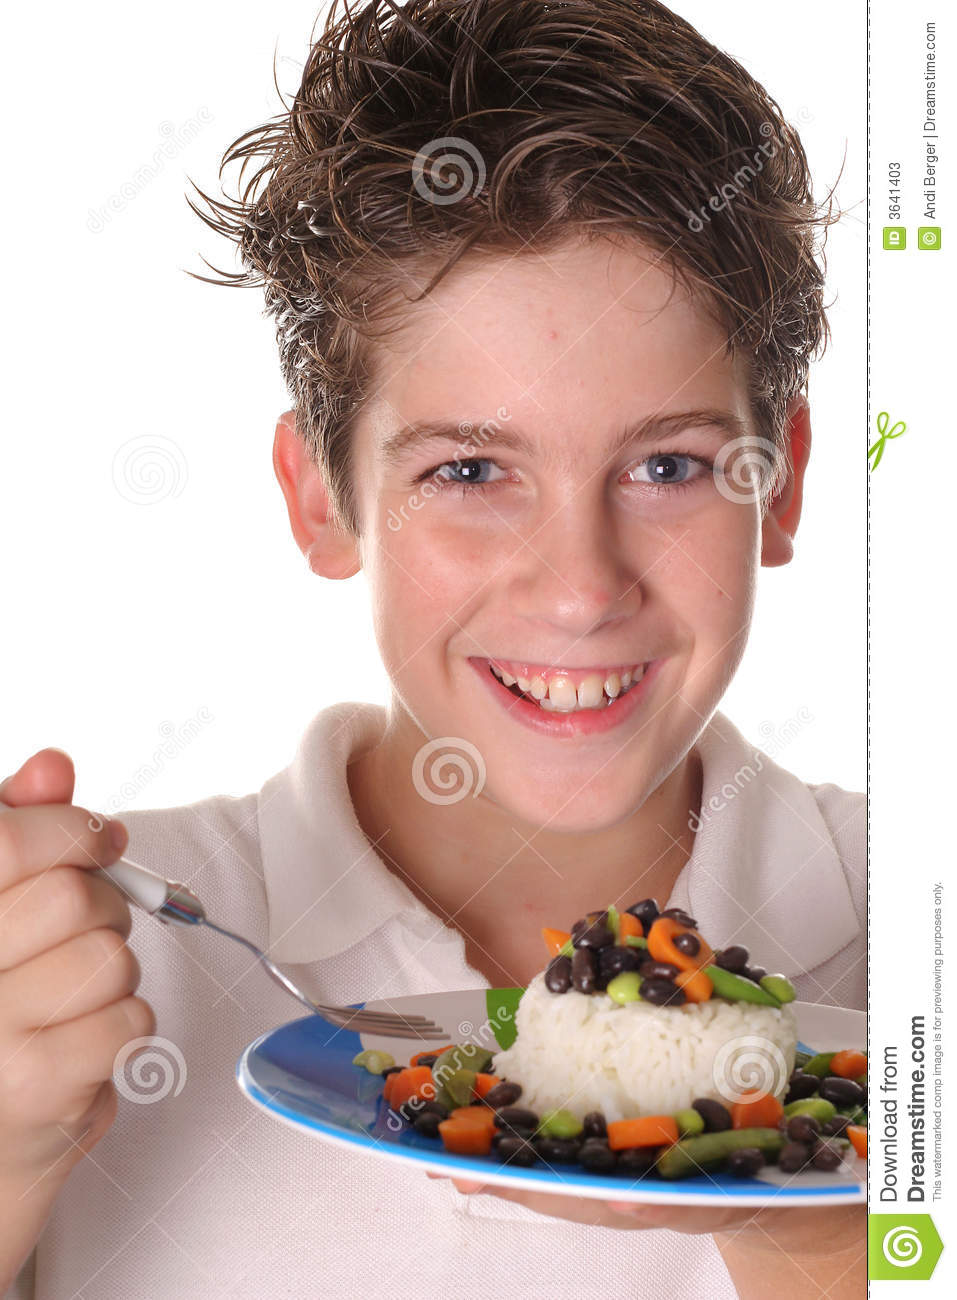 Happy young boy eating healthy rice, beans & veggi